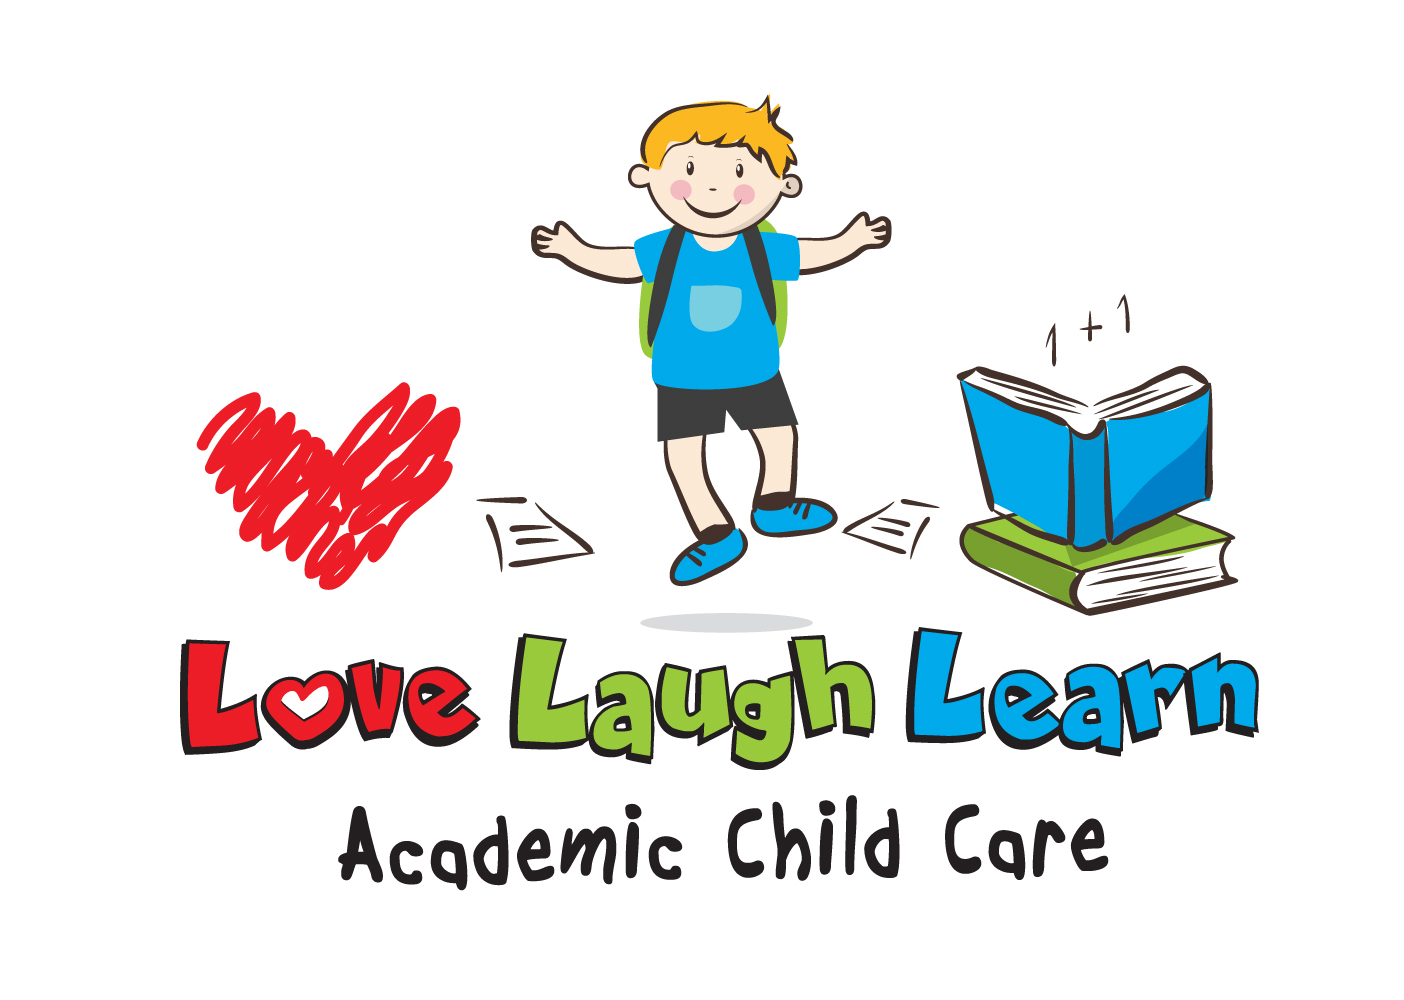 Love Laugh Learn - Academic Child Care